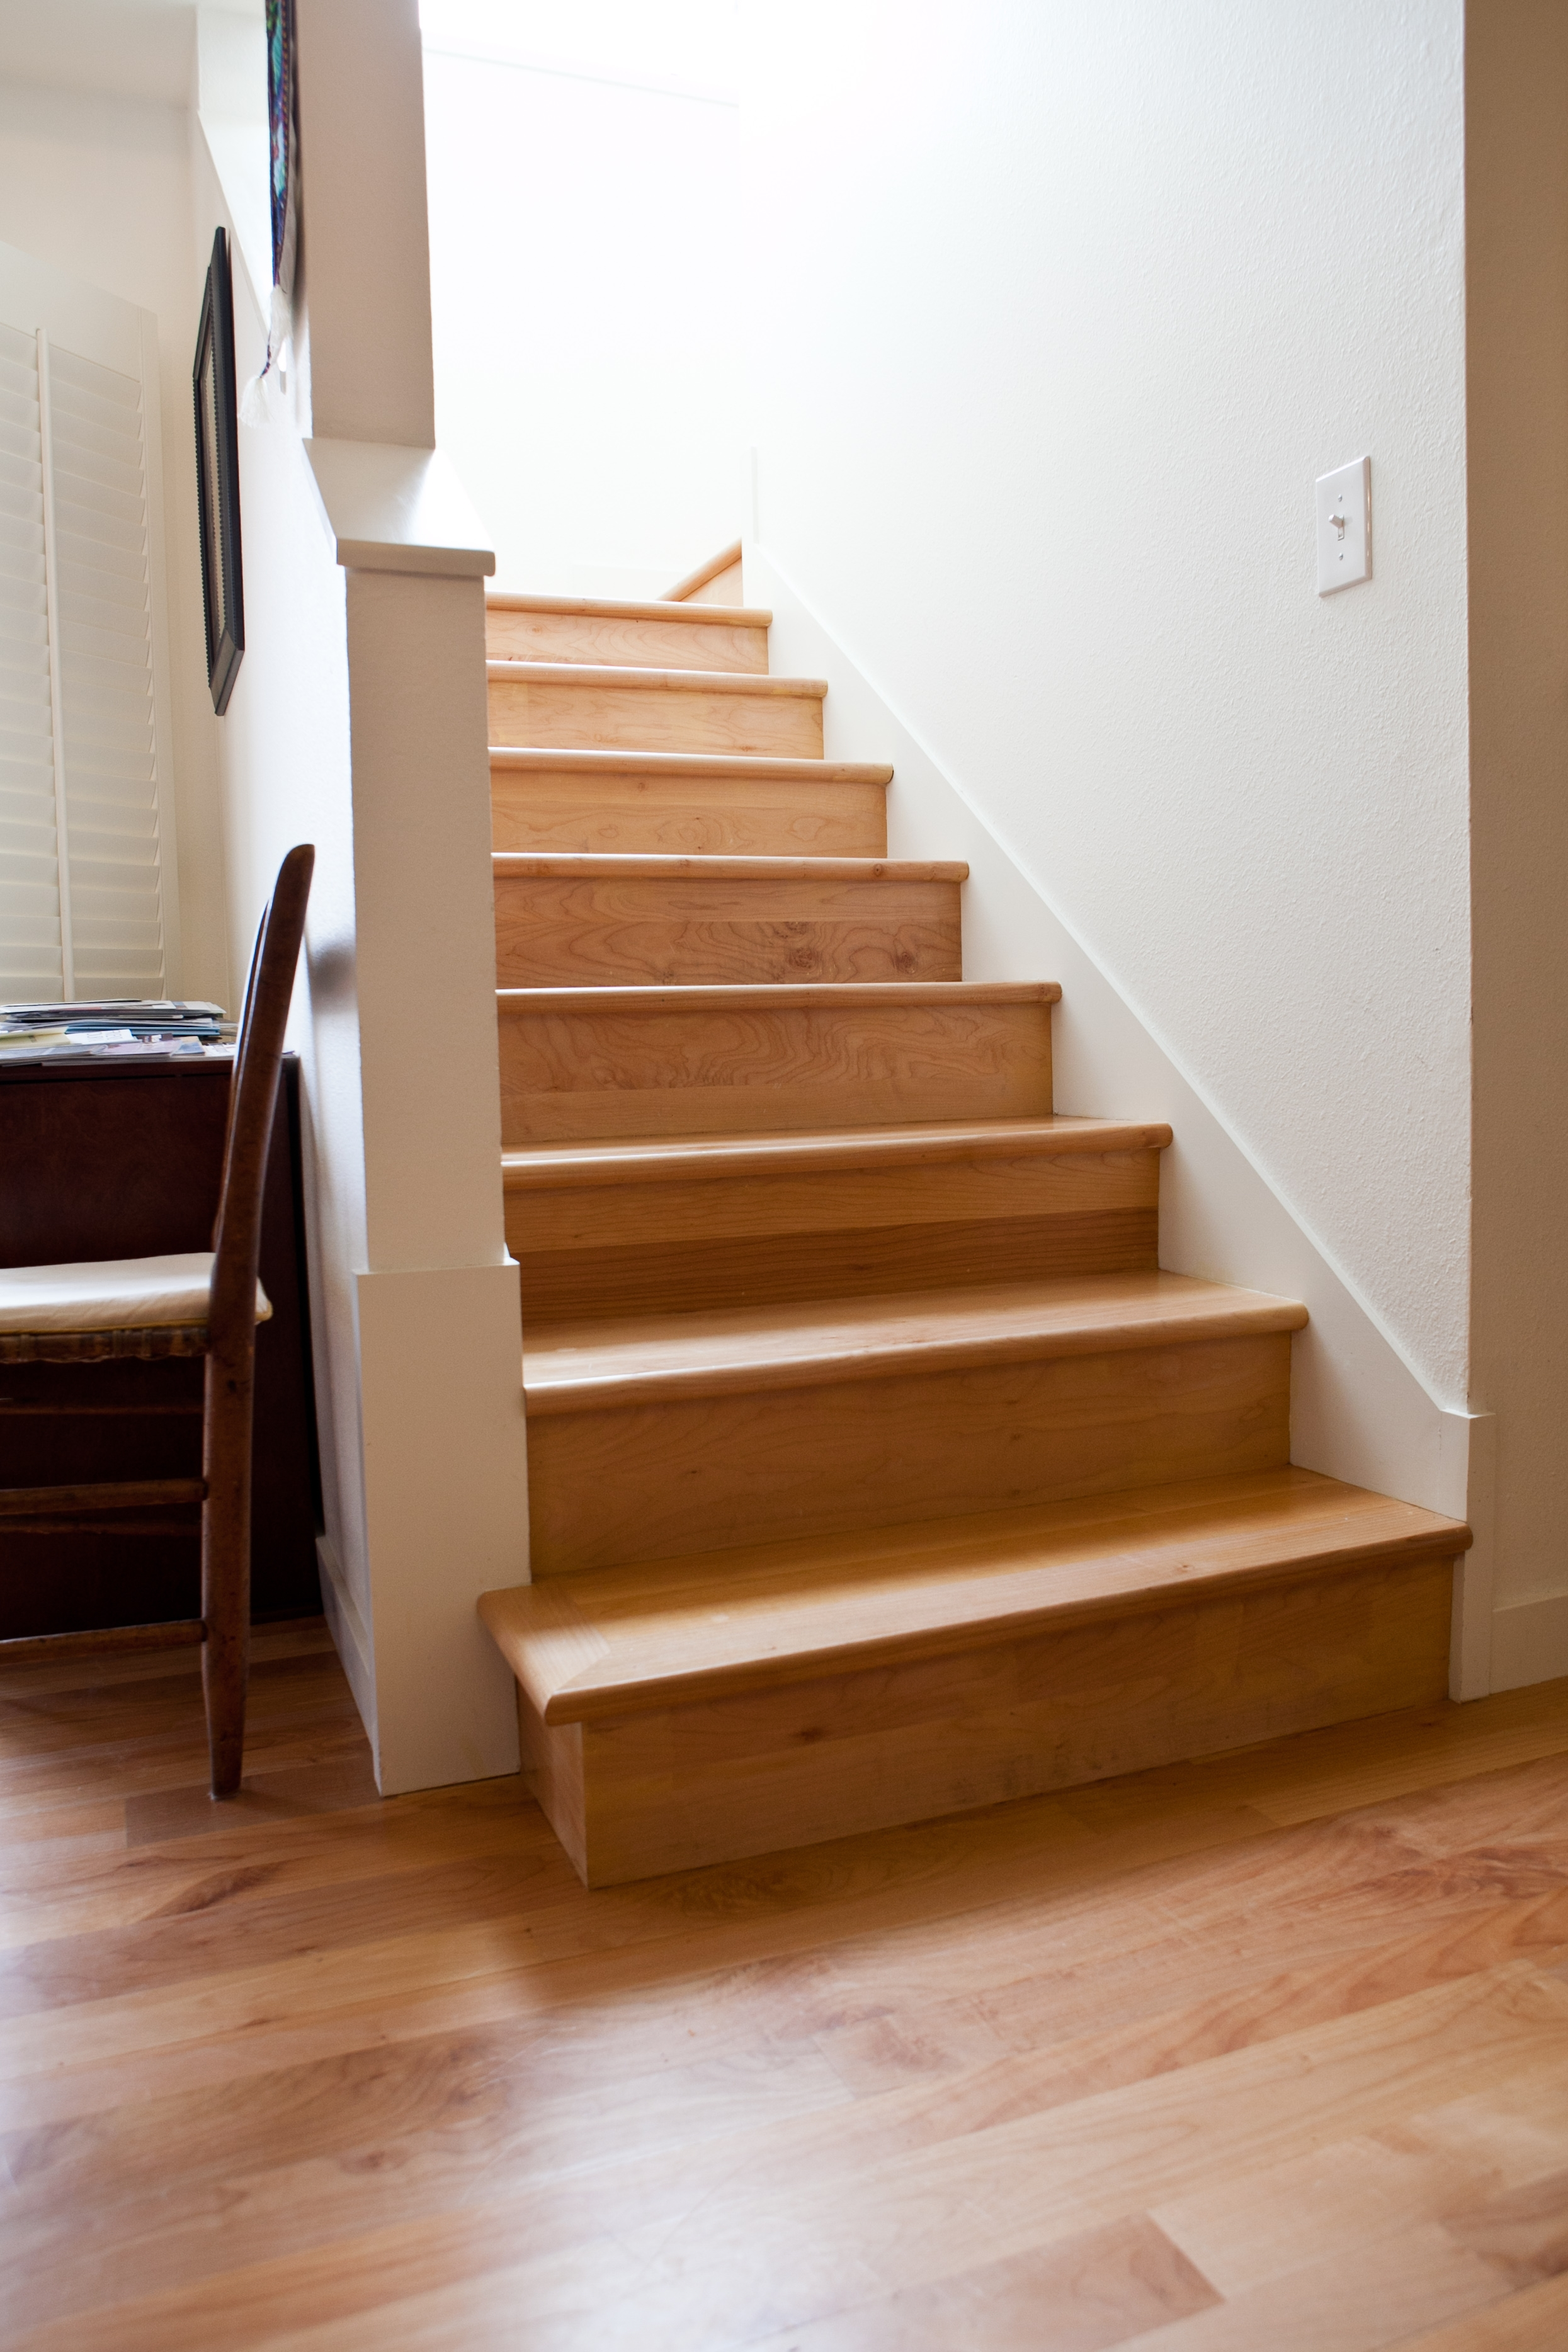 Custom Made Stair Parts — Zena Forest Products Salem Or   Matching Stairs To Hardwood Floors   Laminate Flooring   Refinishing Hardwood   Stain   Staircase   Wide Plank